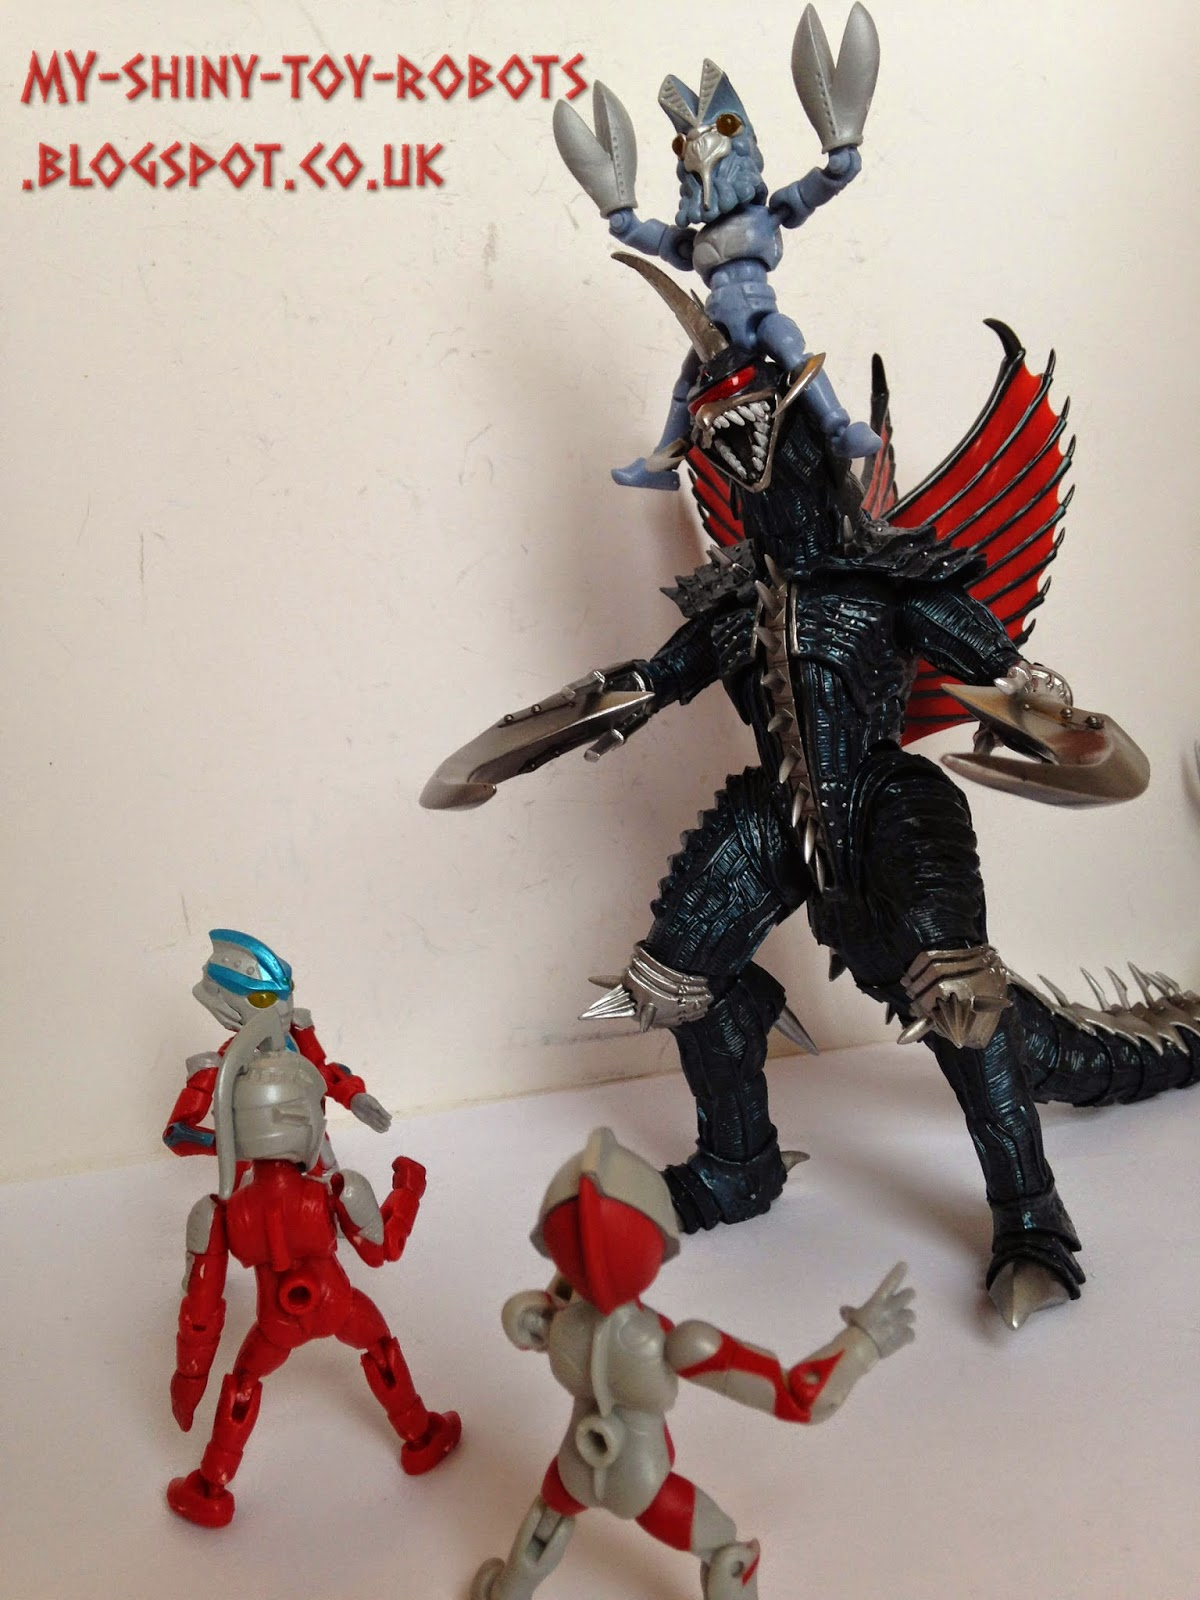 Teaming up with Gigan